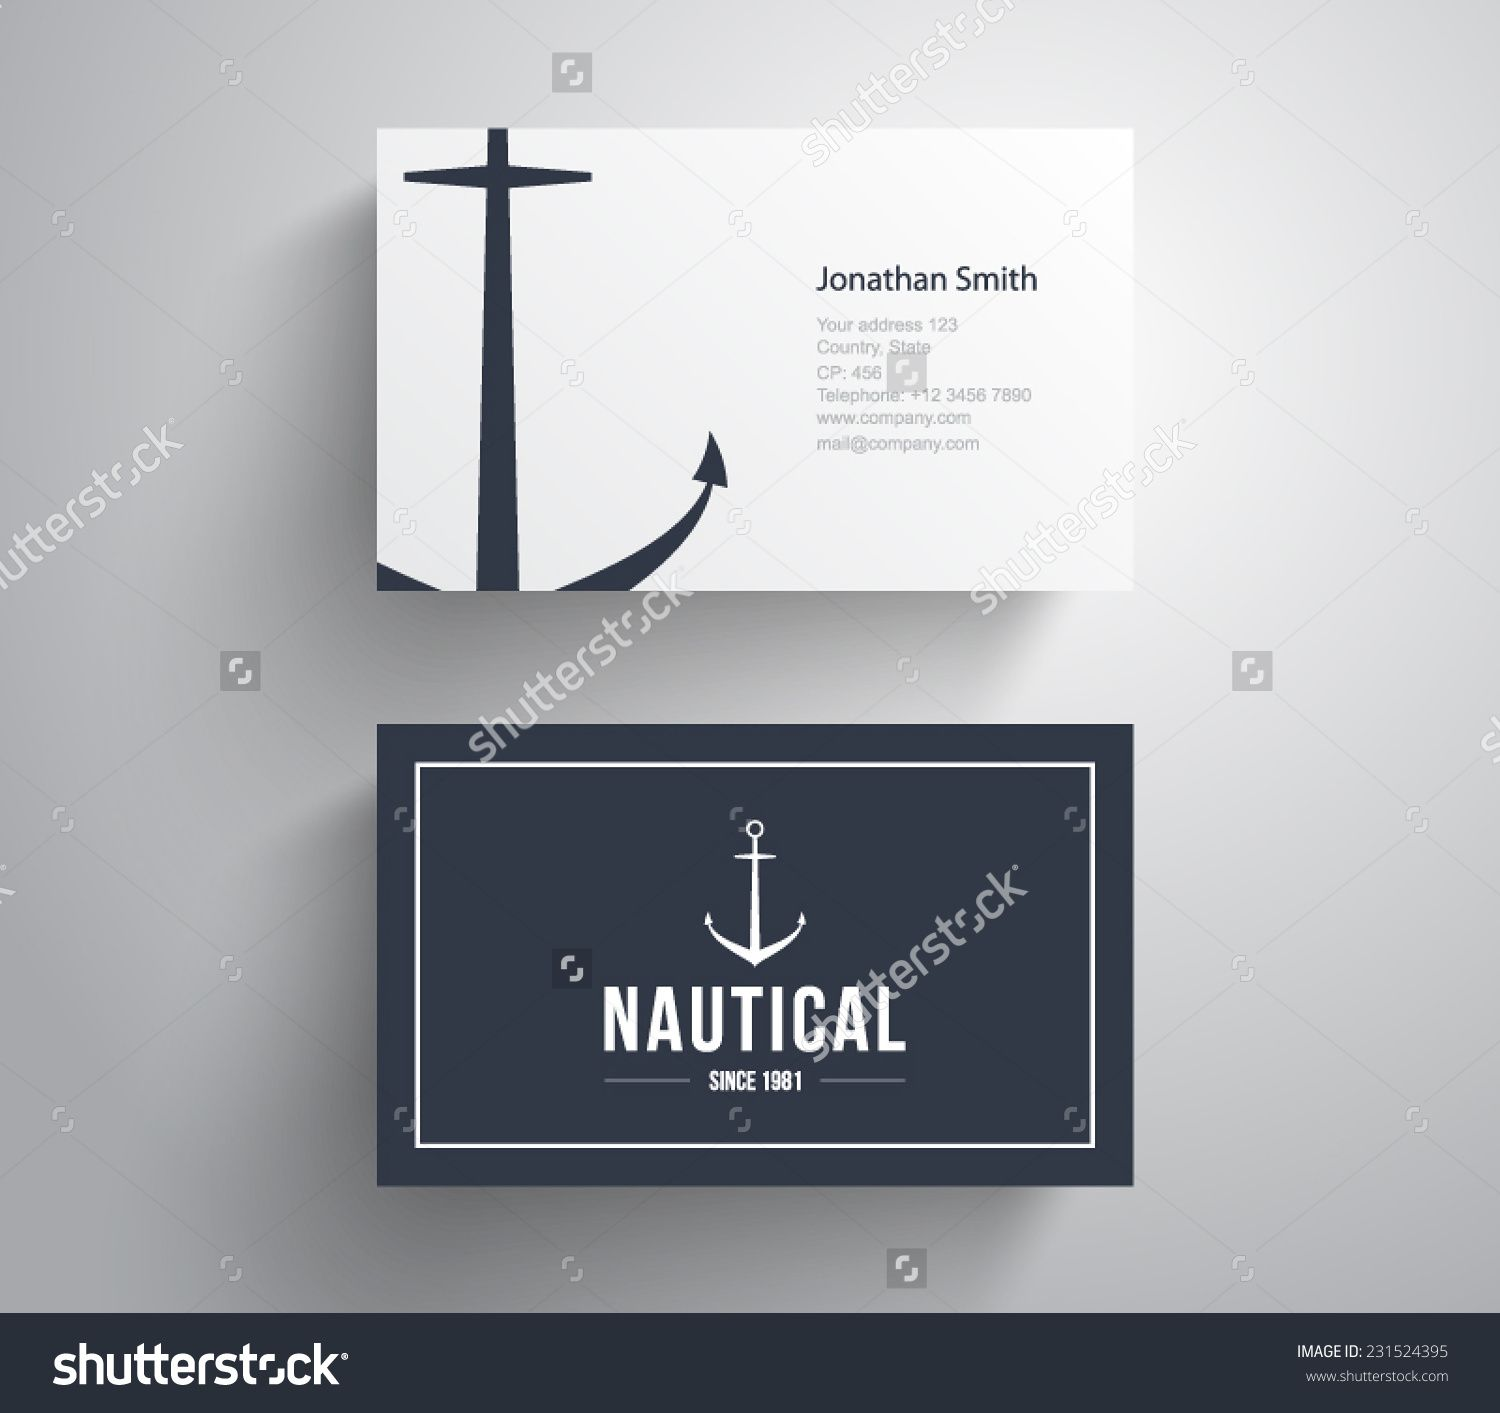 stock-vector-business-card-with-retro-vintage-logo-marine-nautical ...